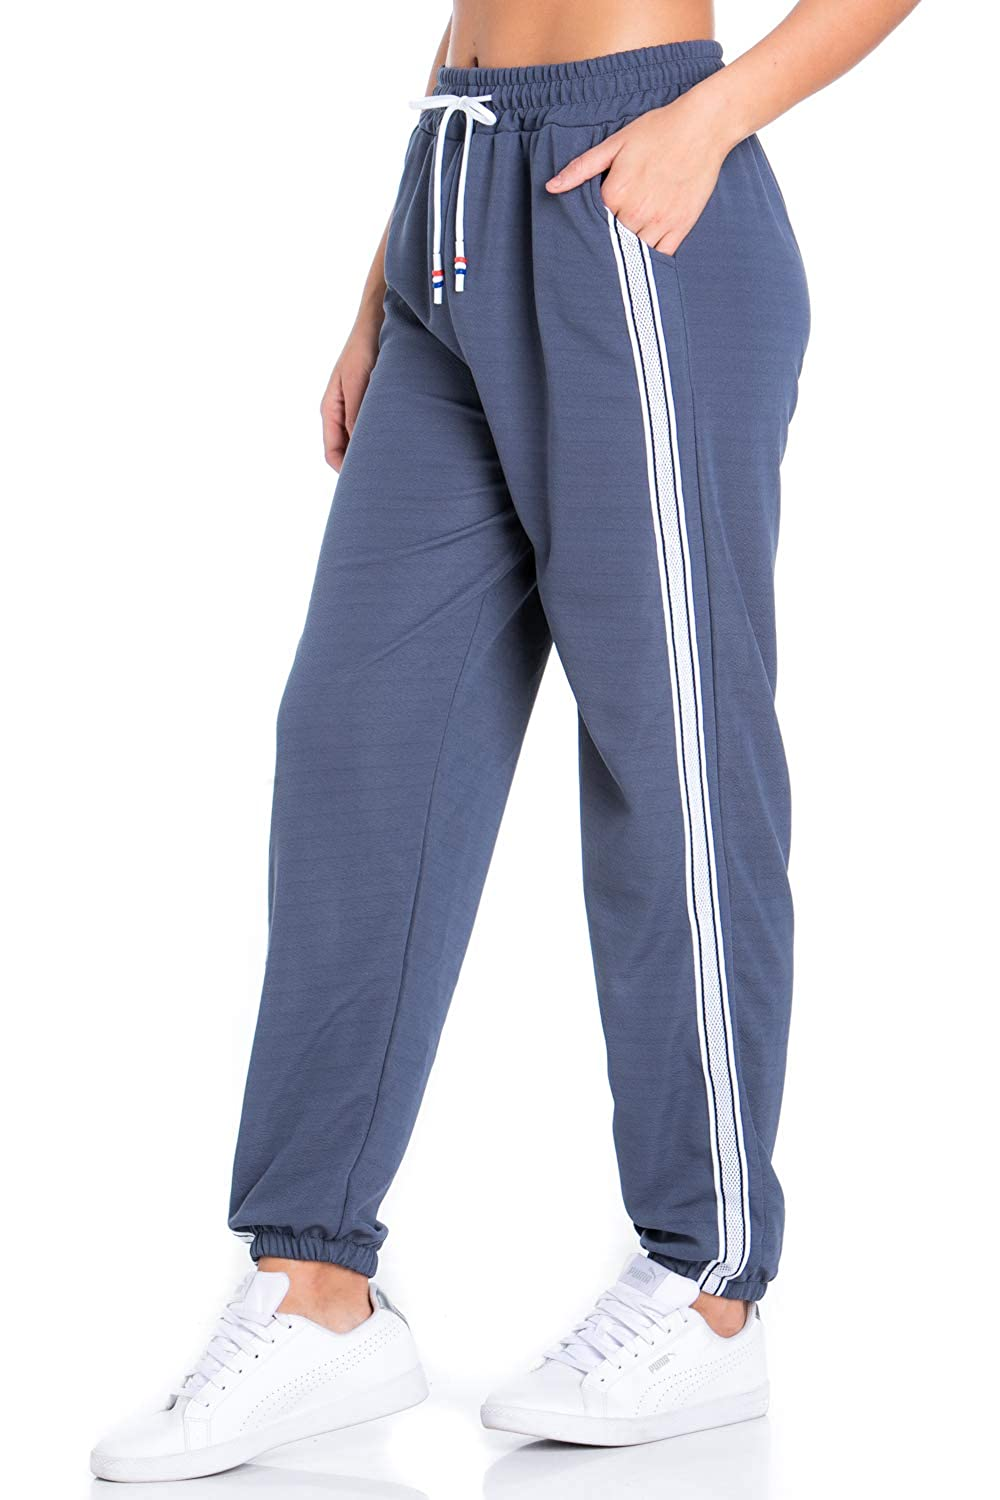 bluee Grey9814 My Yuccie Women's Super Soft Comfy Print Jogger Pants with Zipper Side Pockets (S  XL)